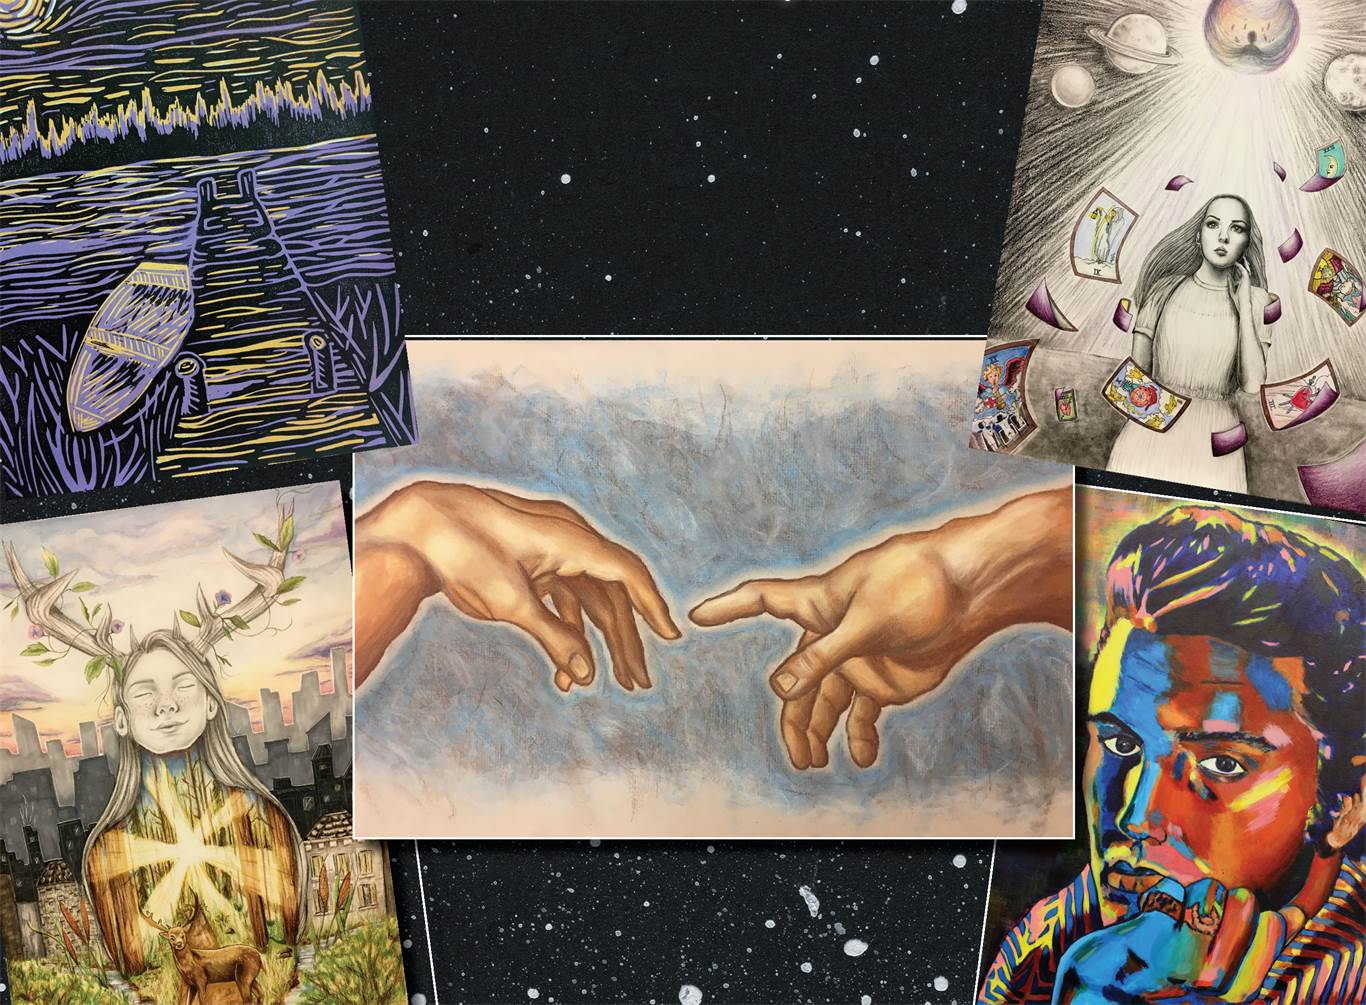 Cardinal Newman art exhibit at McMaster Innovation Park